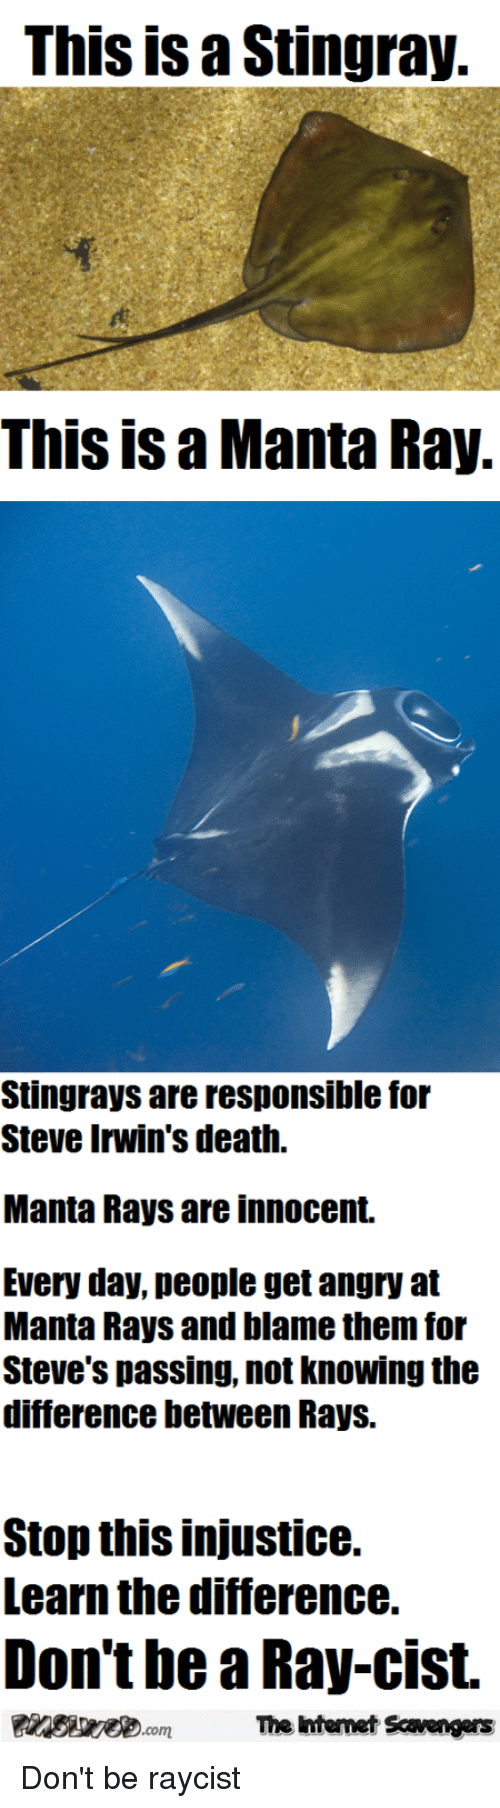 Death, Angry, and Ray: This is a Stingray  This is a Manta Ray.  Stingrays are responsible for  Steve Irwin's death.  Manta Rays are innocent  Every day, people get angry at  Manta Rays and blame them for  Steve's passing, not knowing the  difference between Rays.  Stop this injustice.  Learn the difference.  Don't be a Ray-cist.  The intemet Scavengers